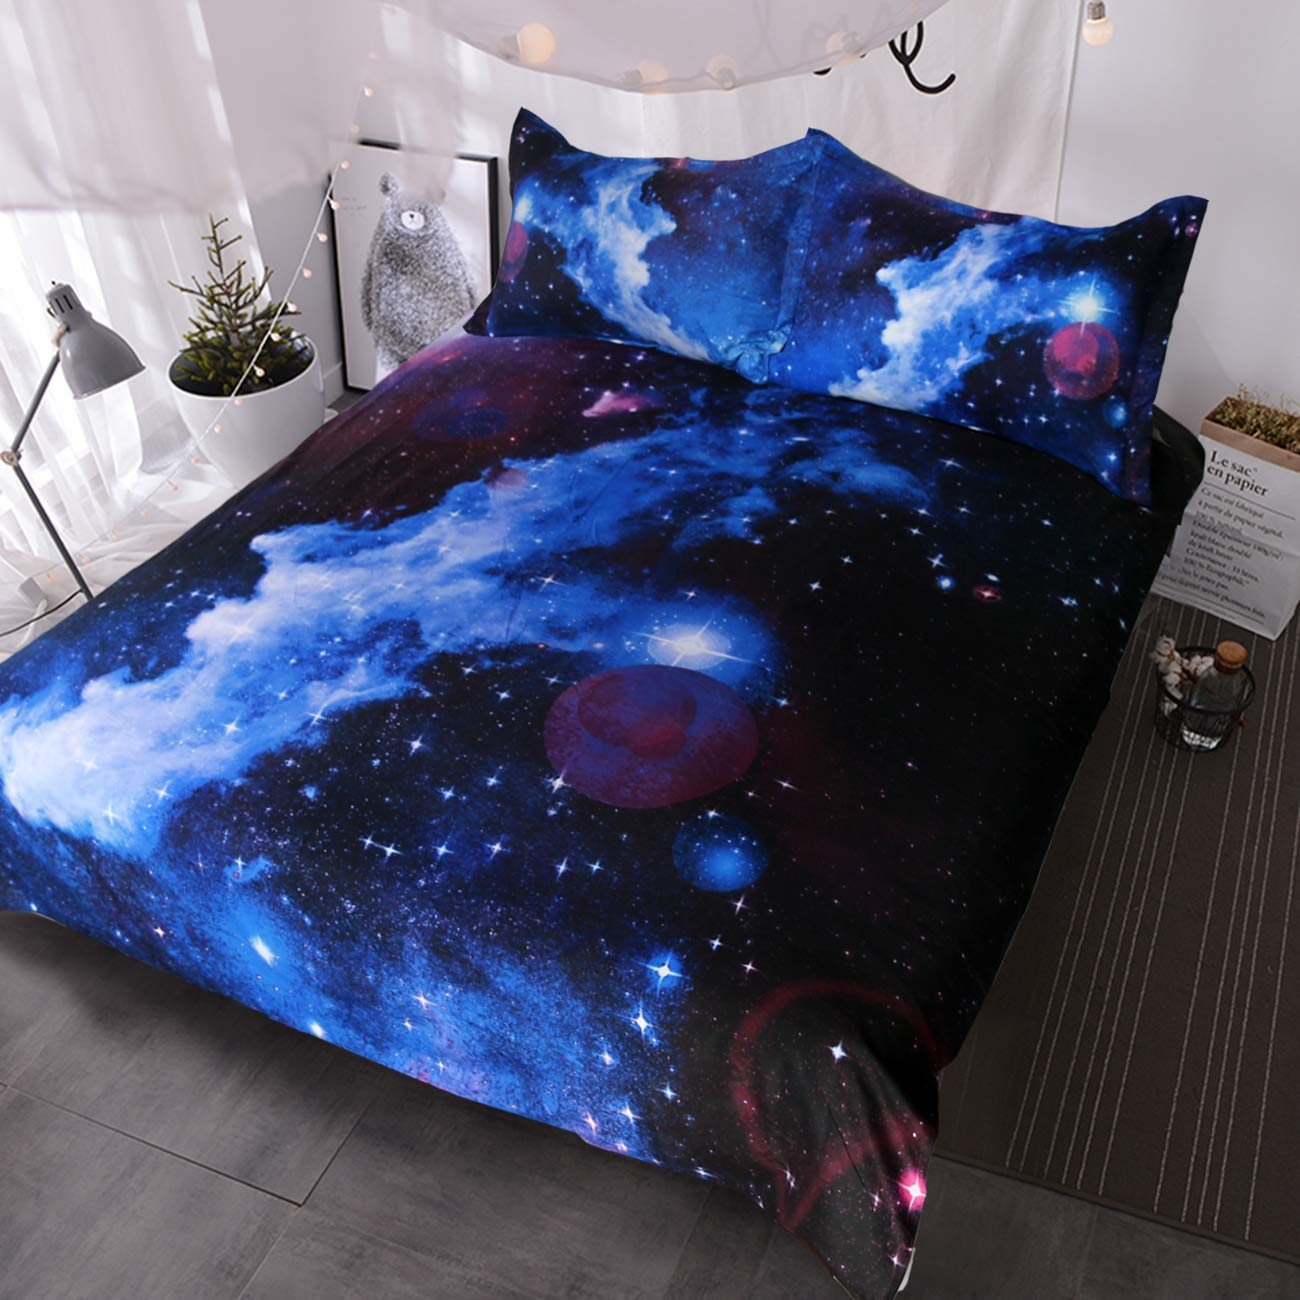 BlessLiving Blue and Purple Nebula Bedding Set 3D Galaxy Duvet Cover 3 Piece Kids Boys Girls Space Bedding (Twin)